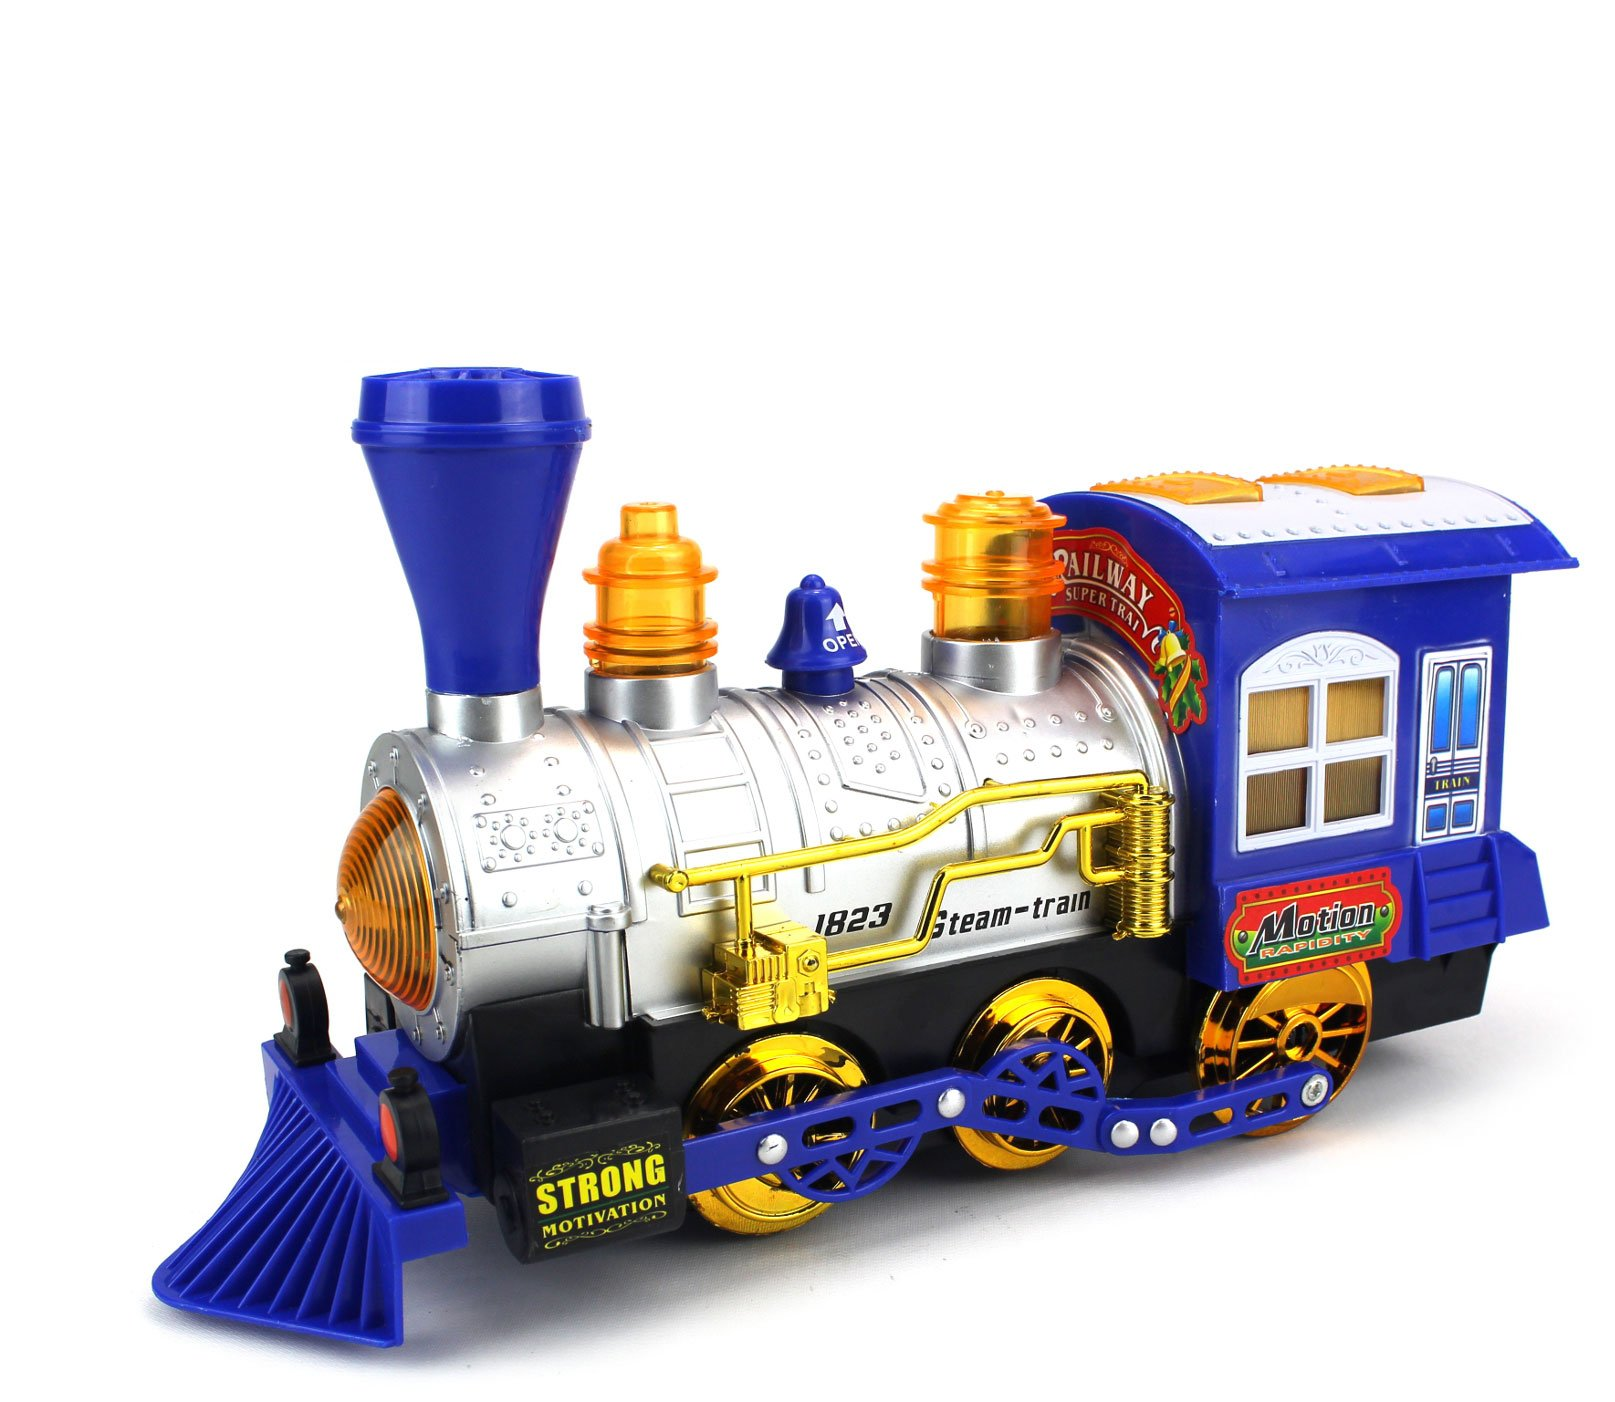 Blue Steam Train Locomotive Engine Car Bubble Blowing Bump & Go Battery Operated Toy Train w/ Lights & Sounds (Blue)